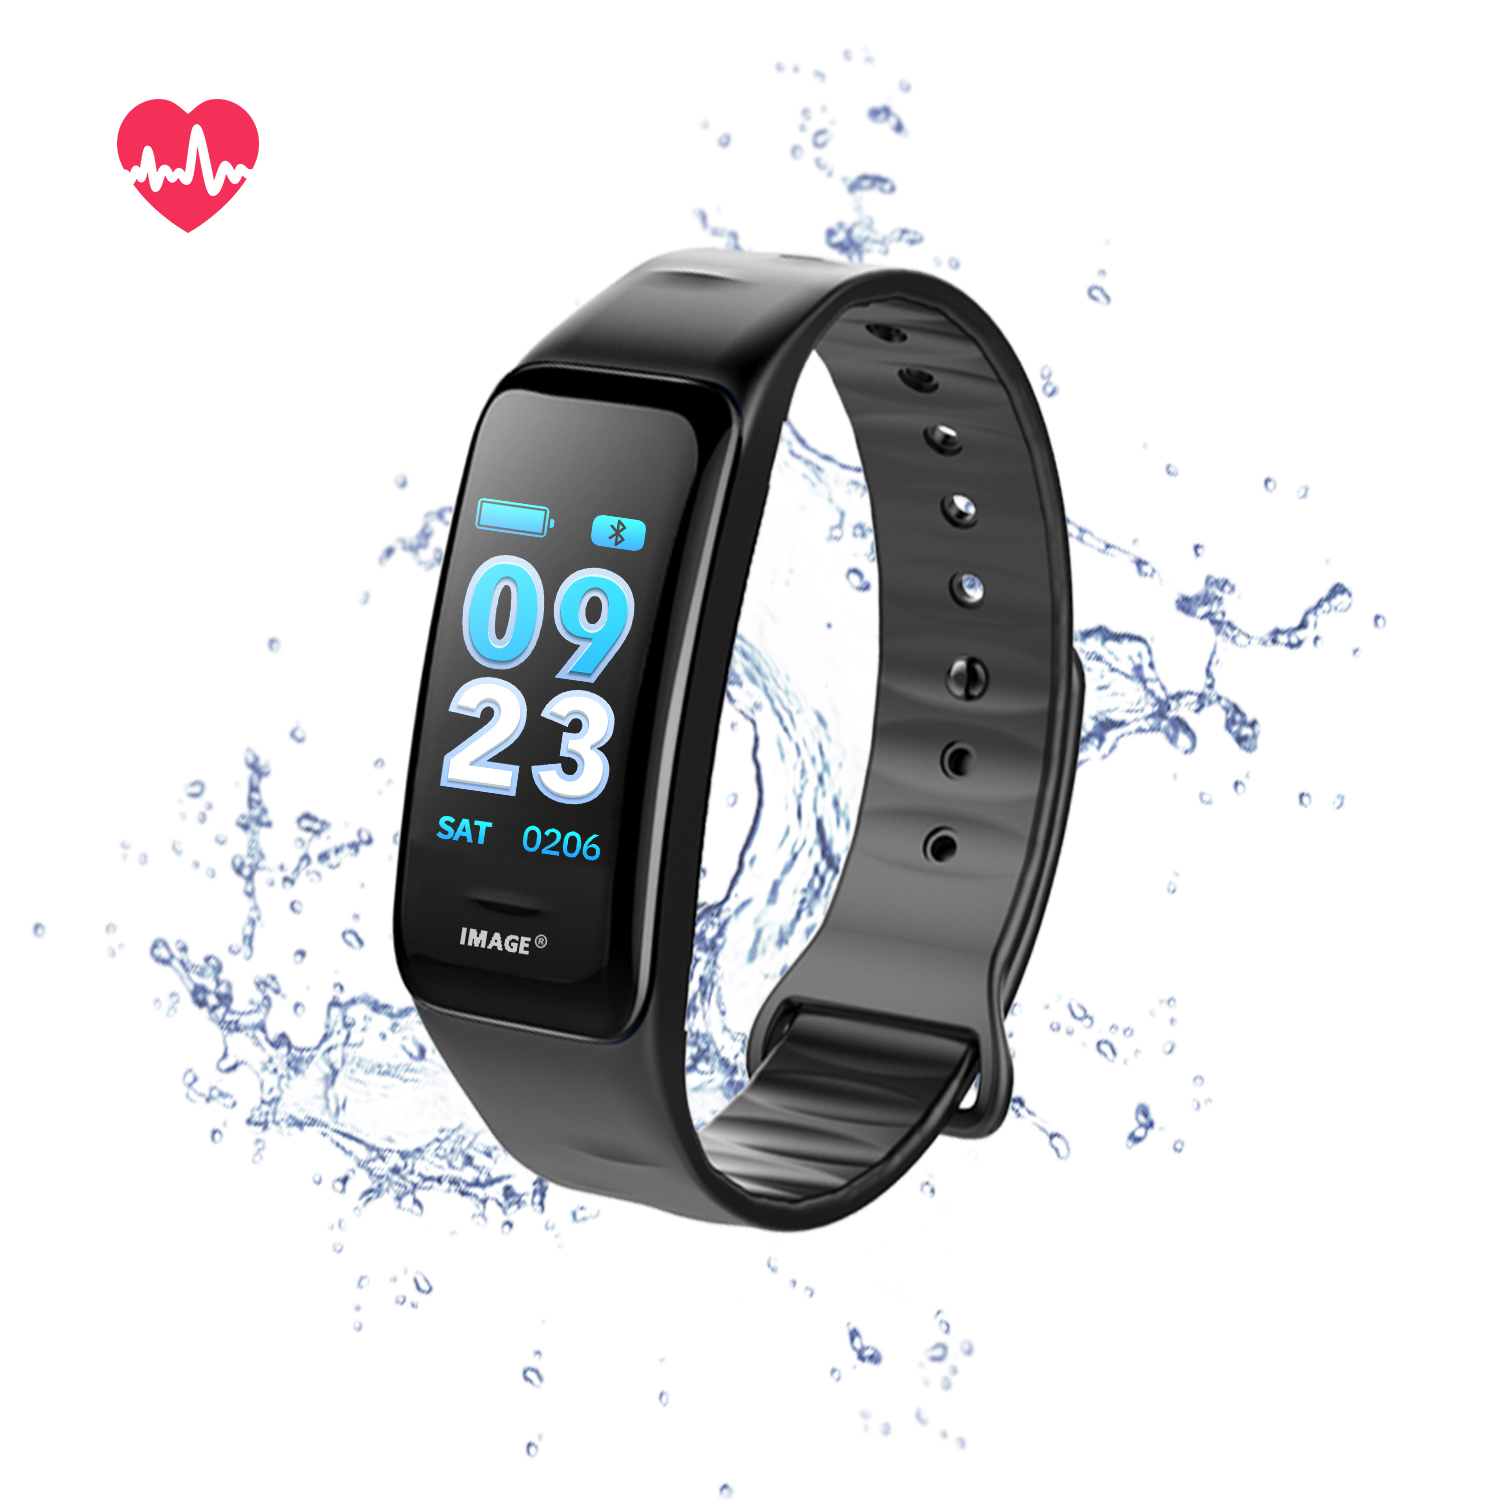 Fitness Tracker Heart Rate Monitor Watch Blood Pressure Activity Tracker Waterproof Smart Wristband for Kids Women Men,Black